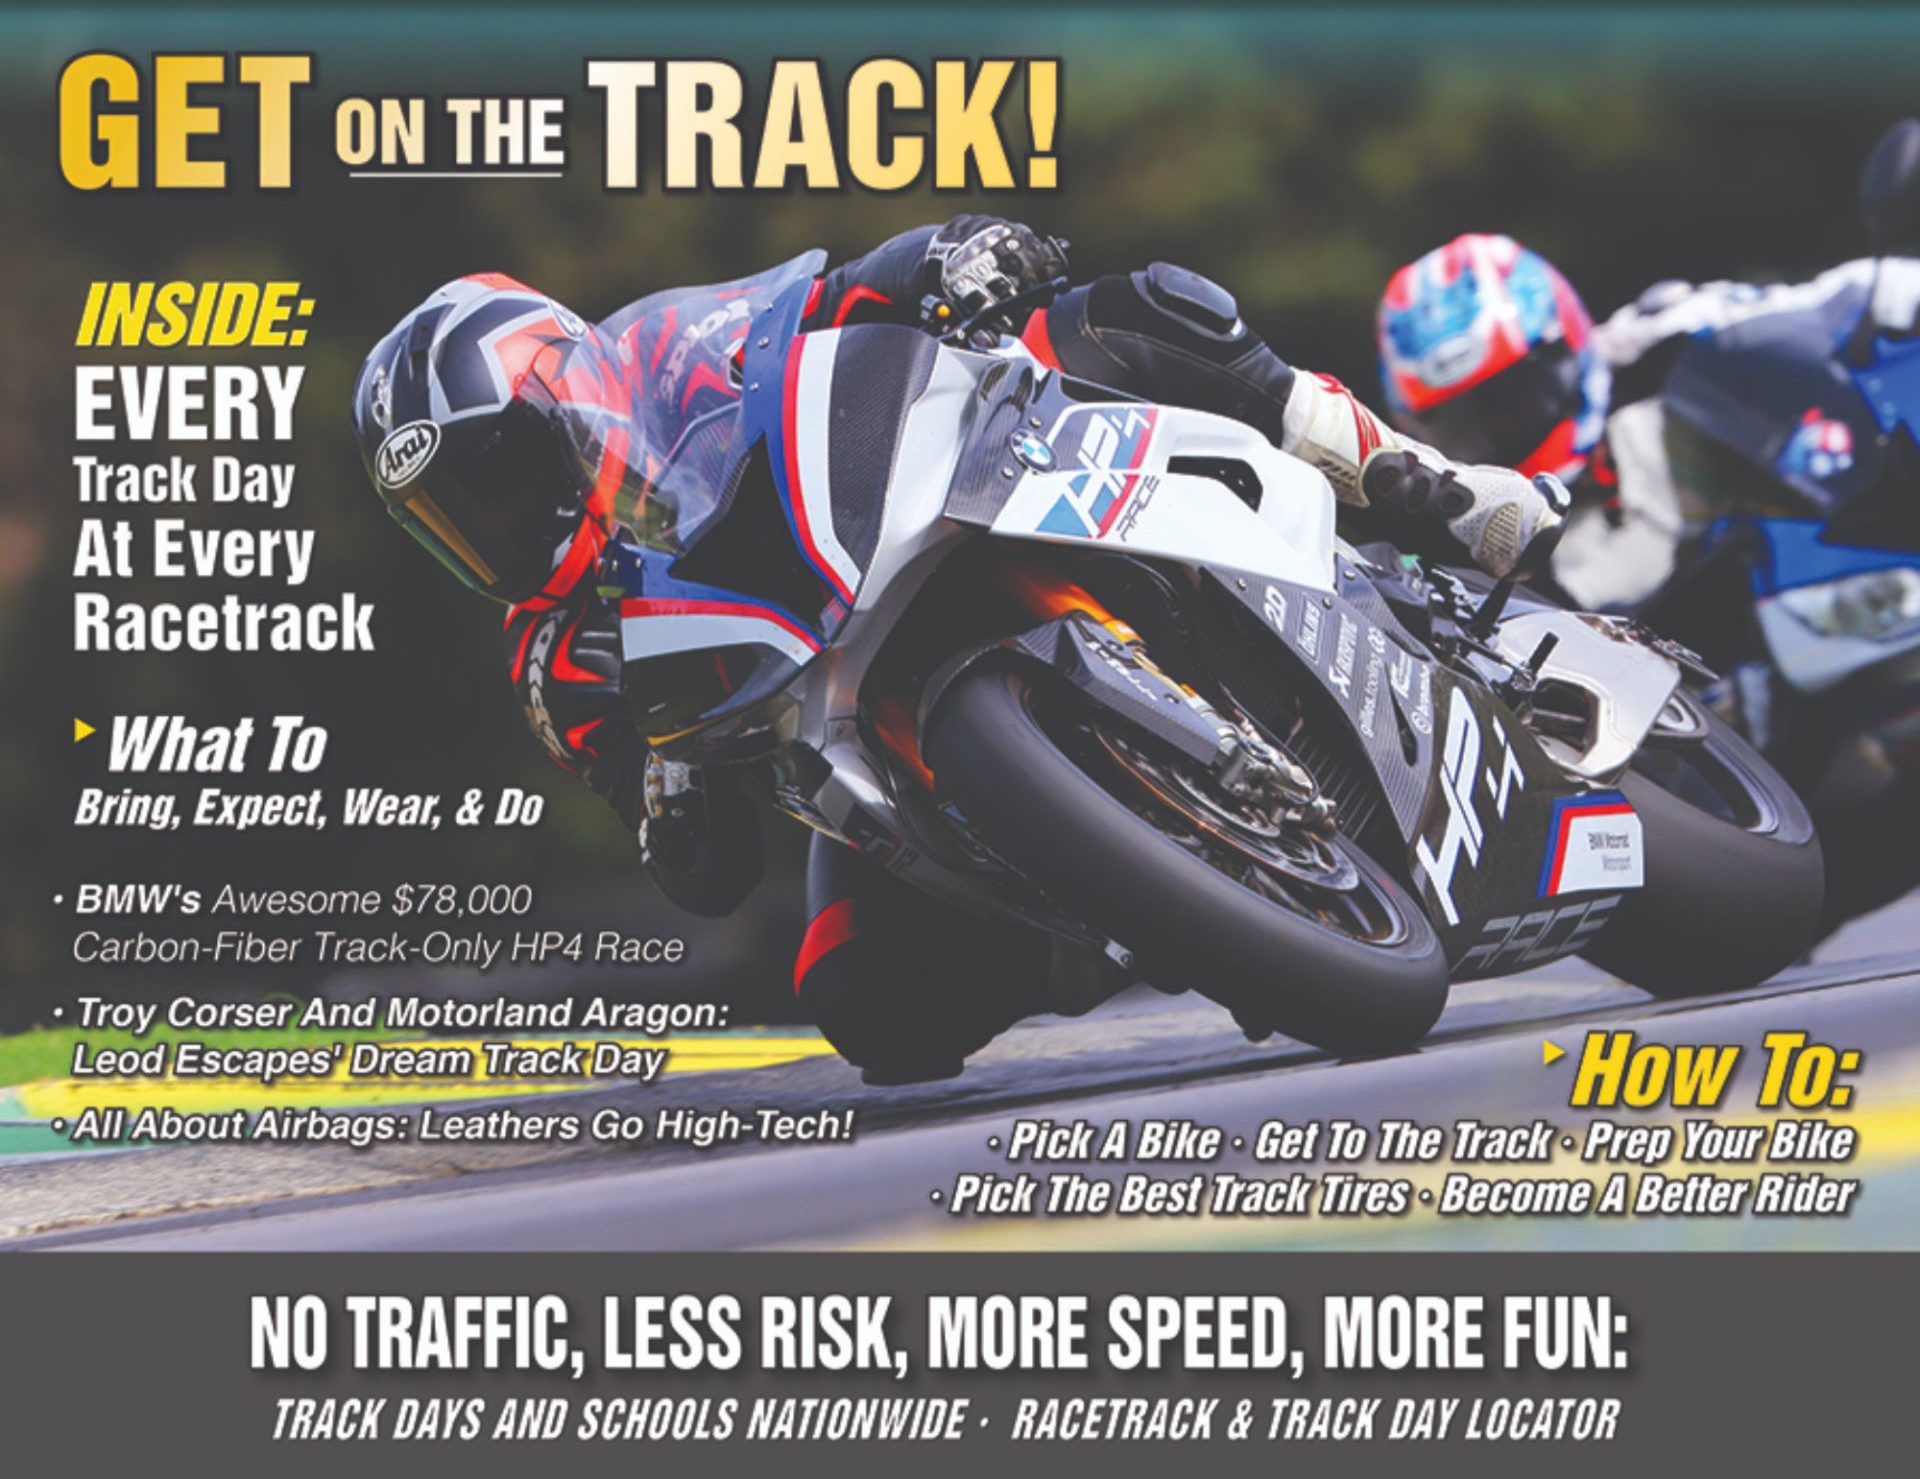 The cover of the 2019 Roadracing World Trackday Directory.